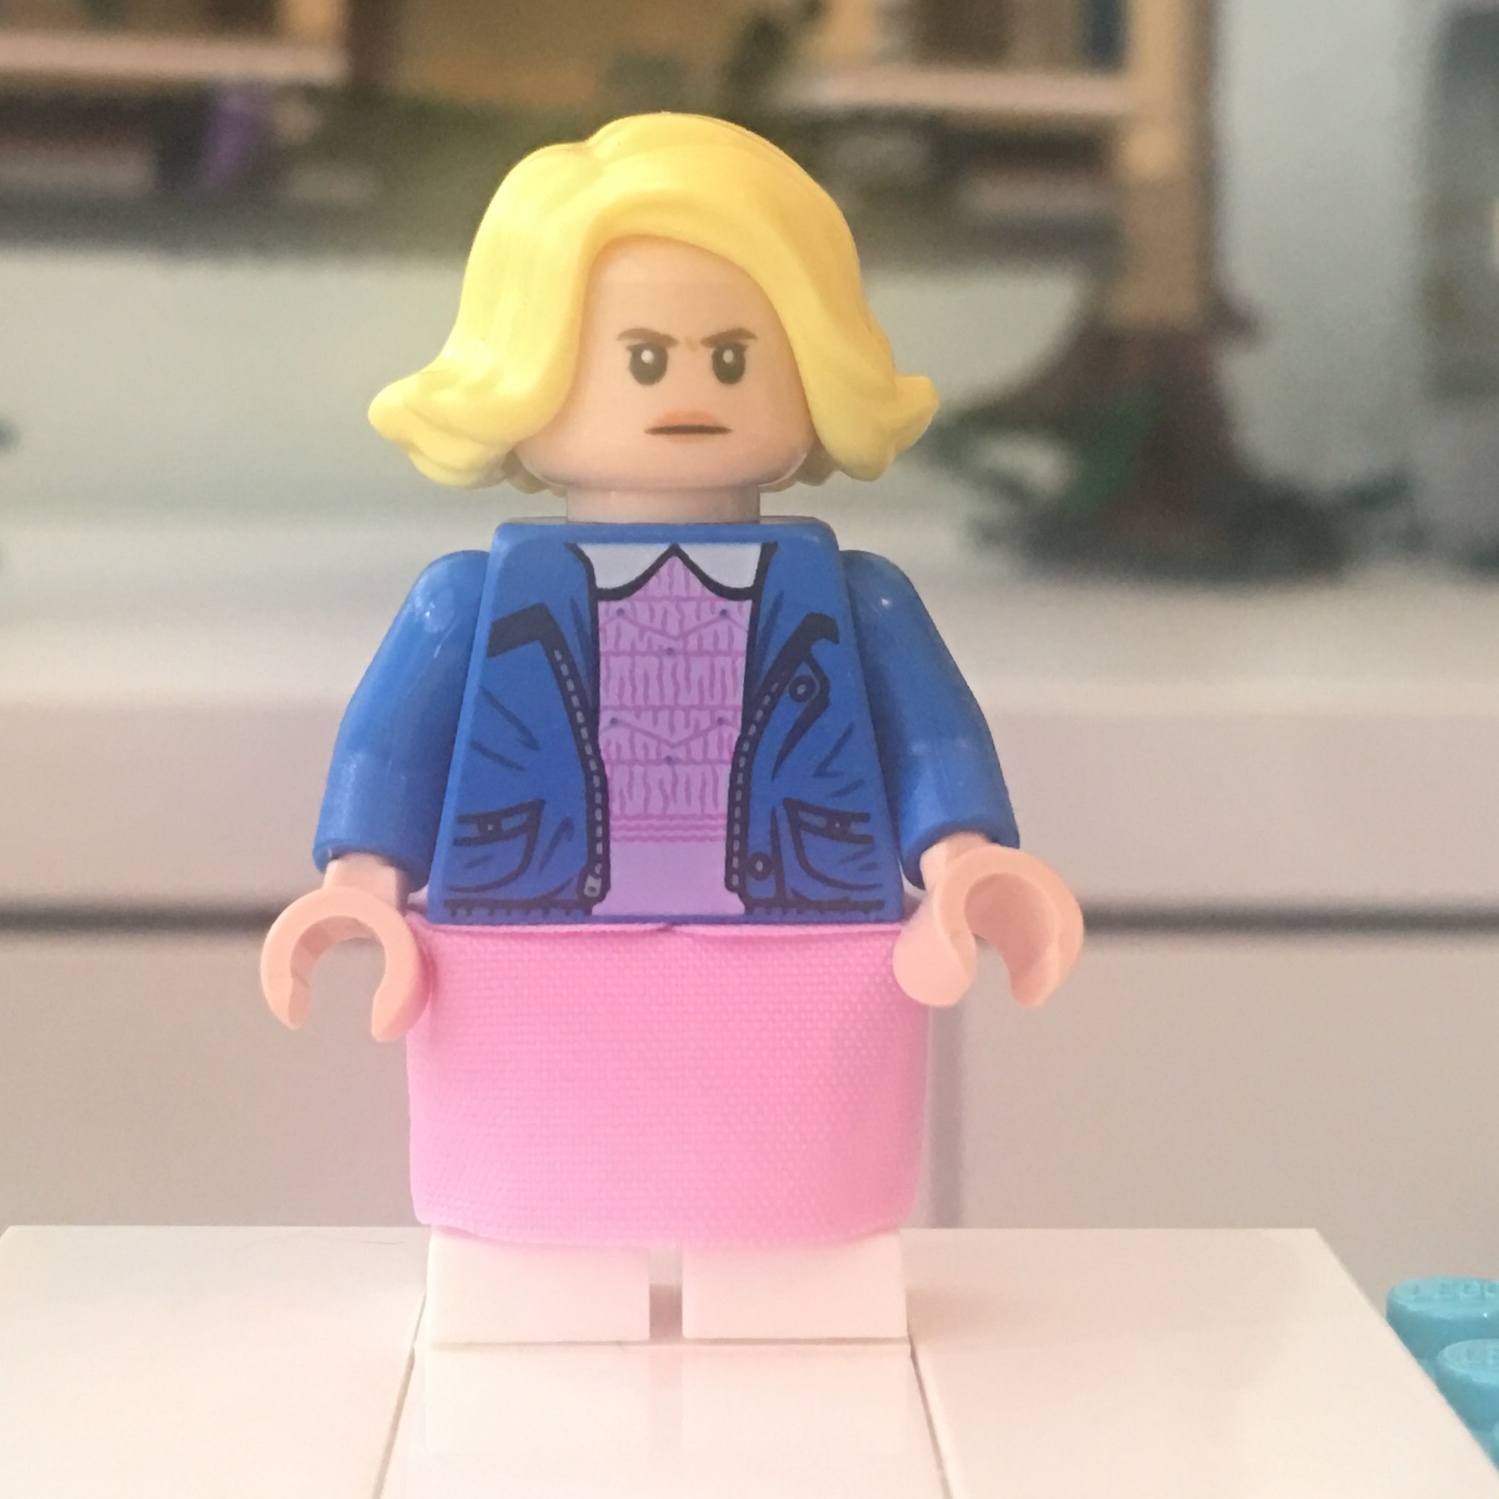 Hair from set 75810 for Stranger Things Minifigure NEW Lego Eleven Head